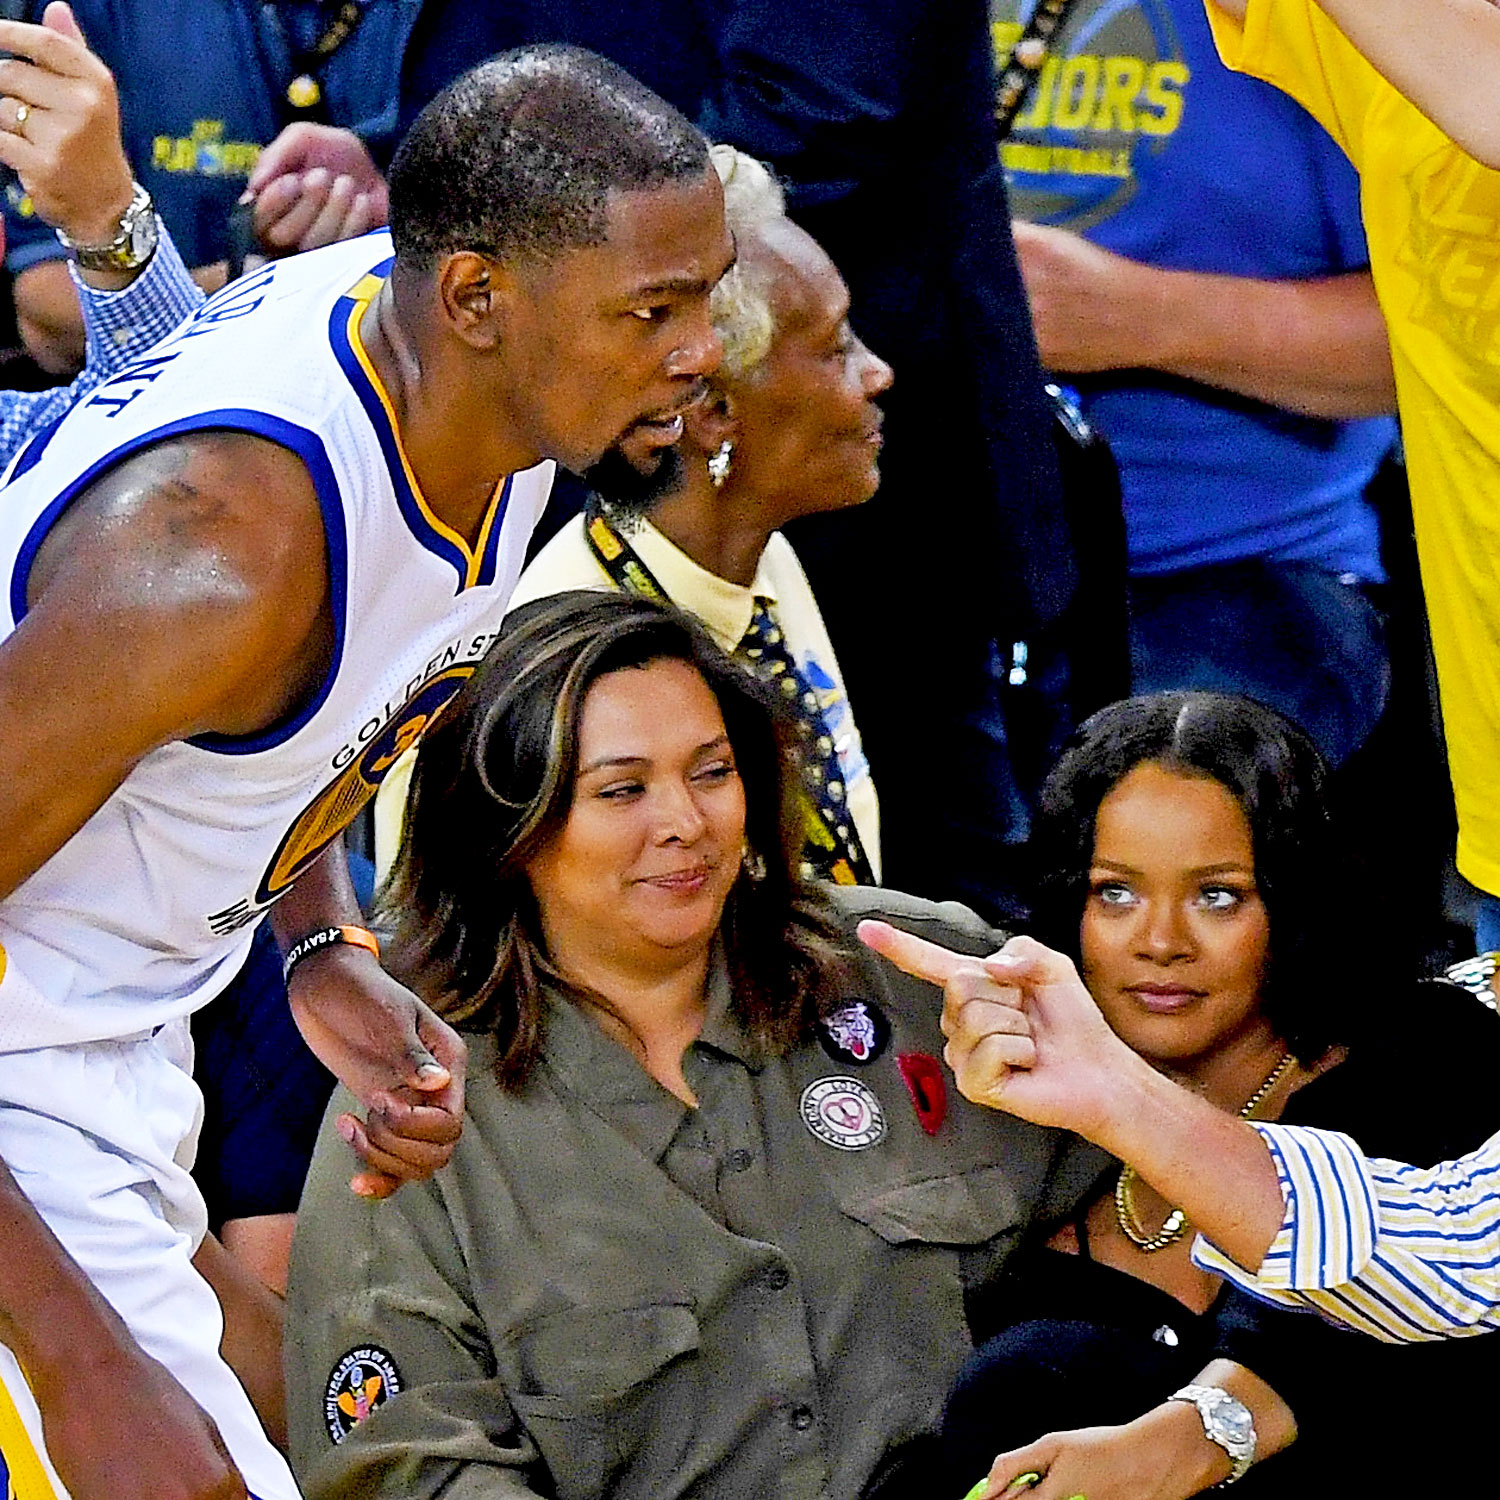 Warriors New Stadium Seat License: Rihanna: 15 Iconic Moments From Superstar